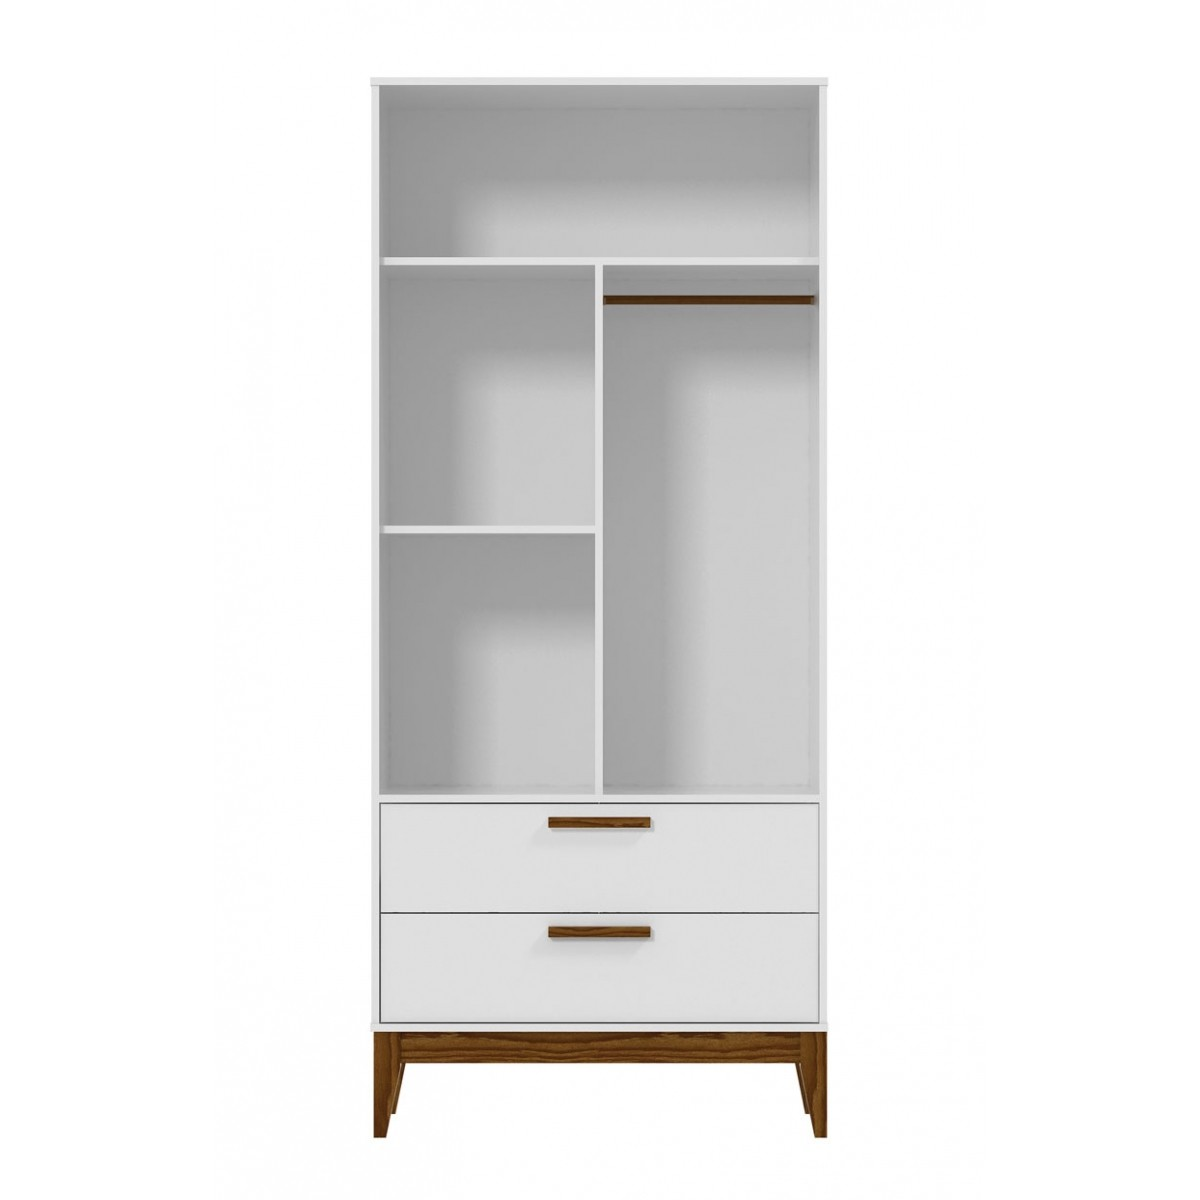 Guarda-Roupa Nature Glass 2 Portas Branco Fosco com Eco Wood - Matic Moveis